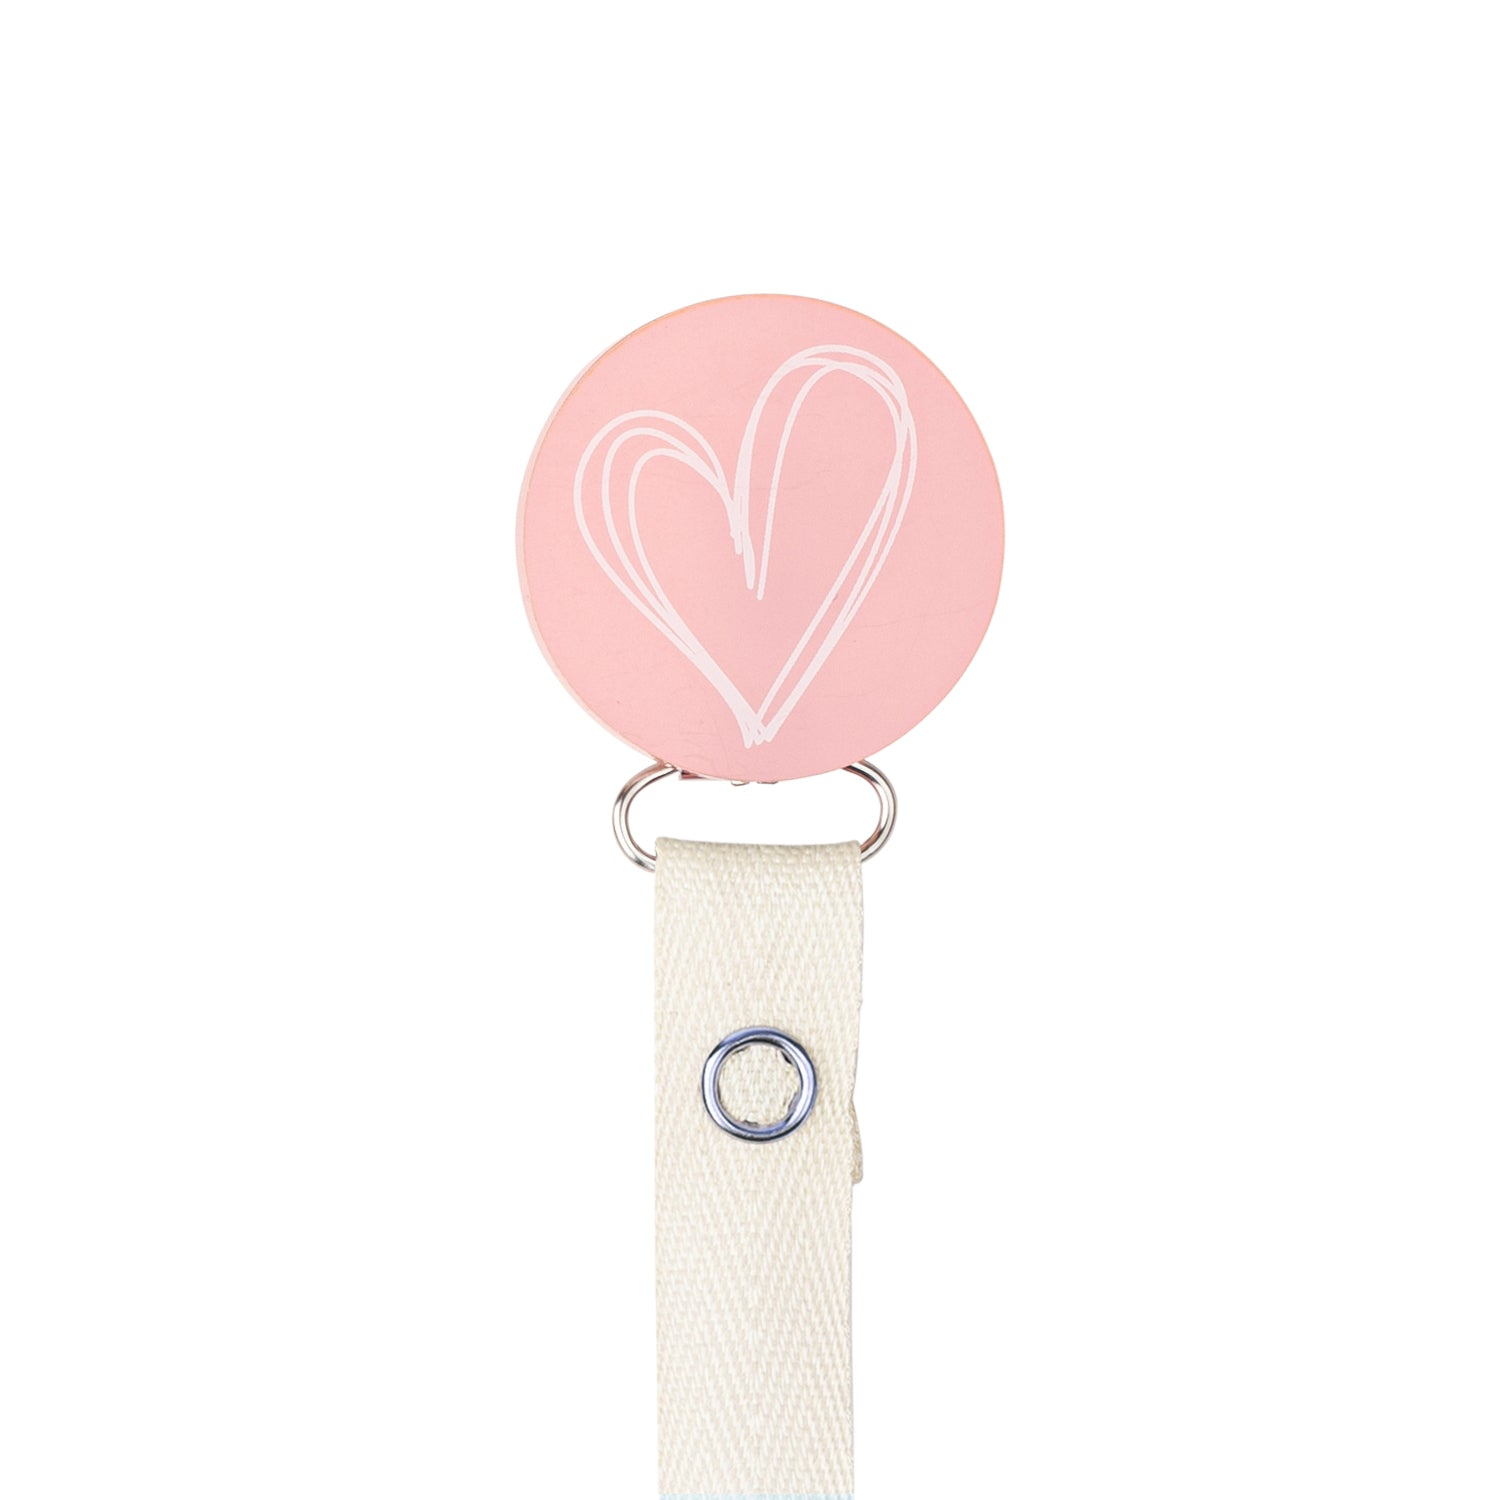 Classy Paci blush pink drawn white heart pacifier clip